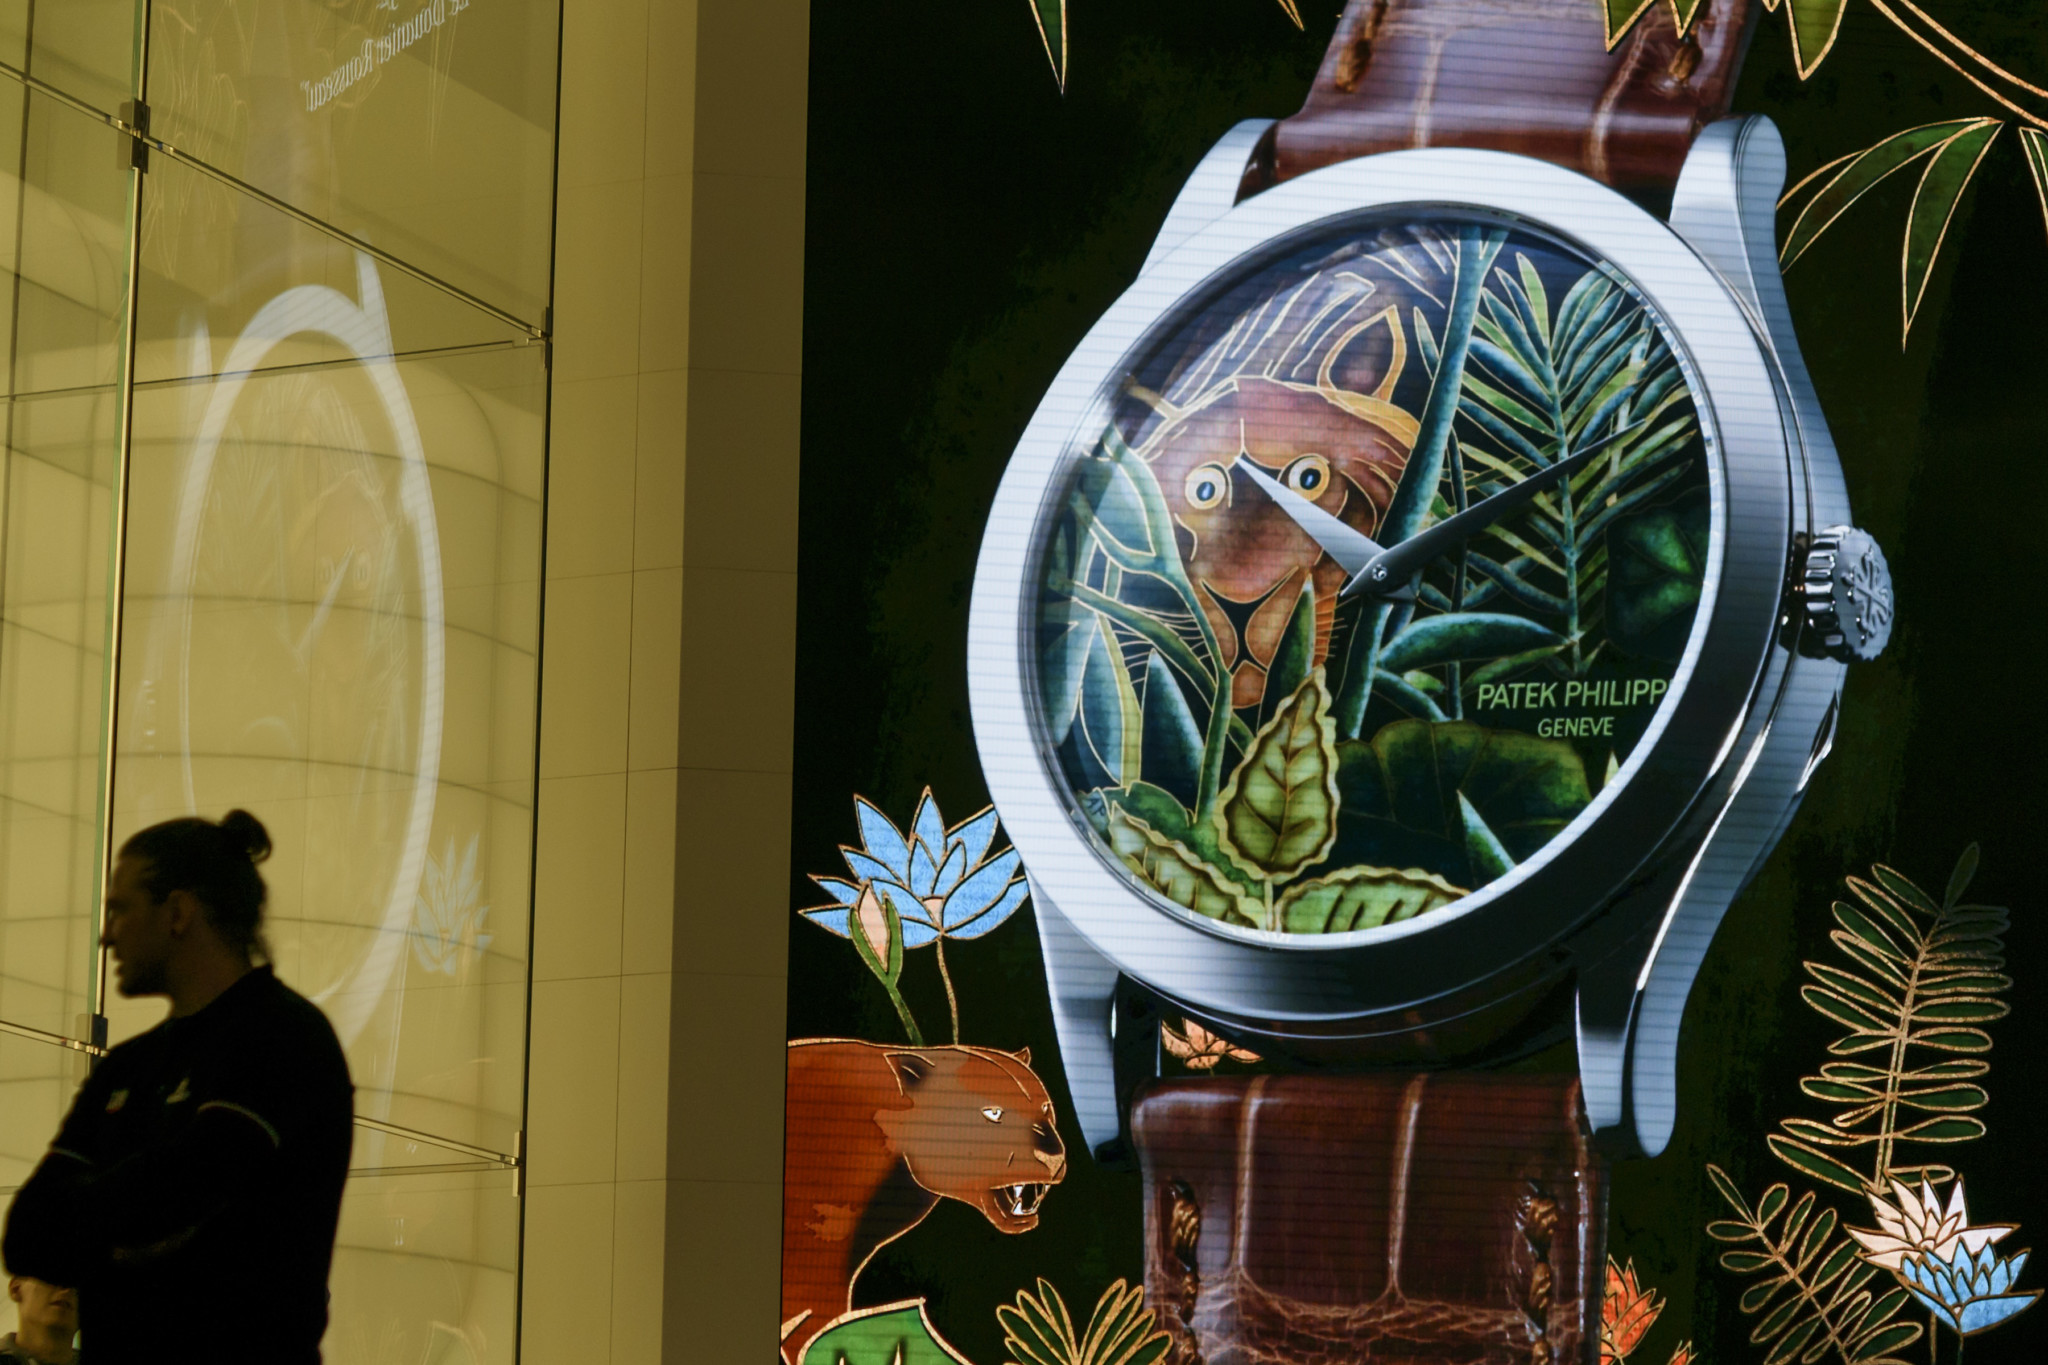 SWITZERLAND-LUXURY-RETAIL-WATCHES